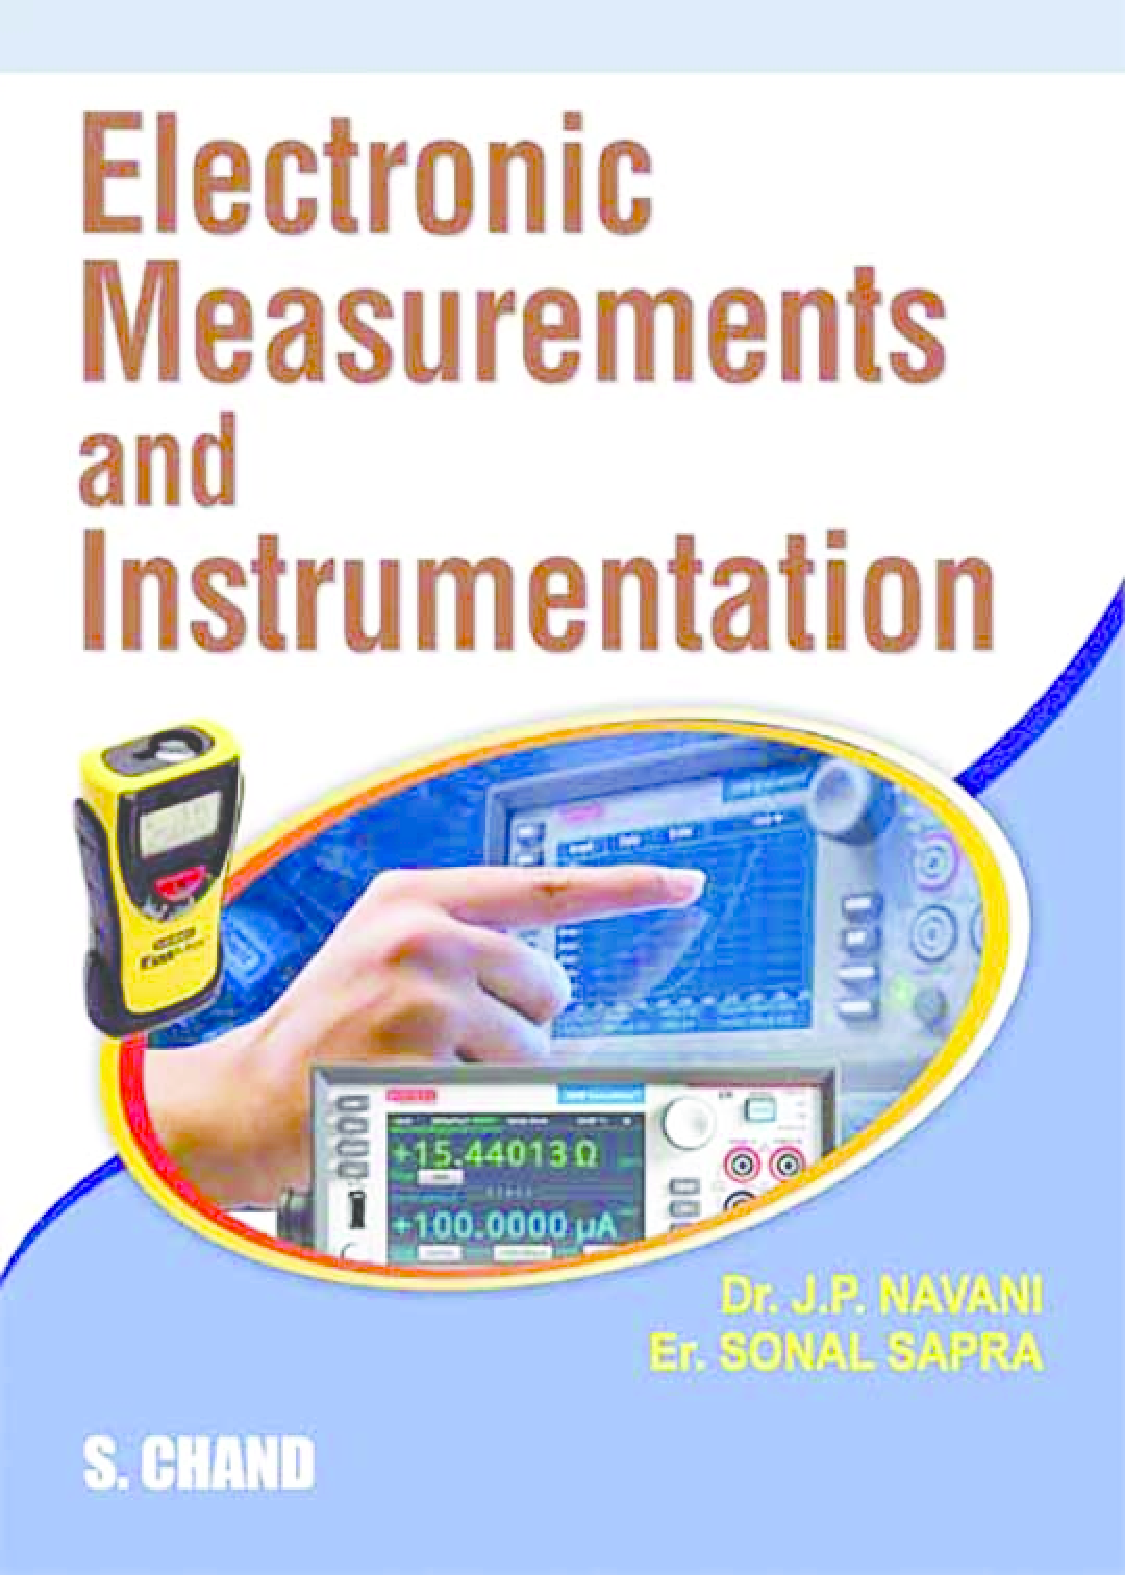 Electronic Measurement And Instrumentation - Page 1